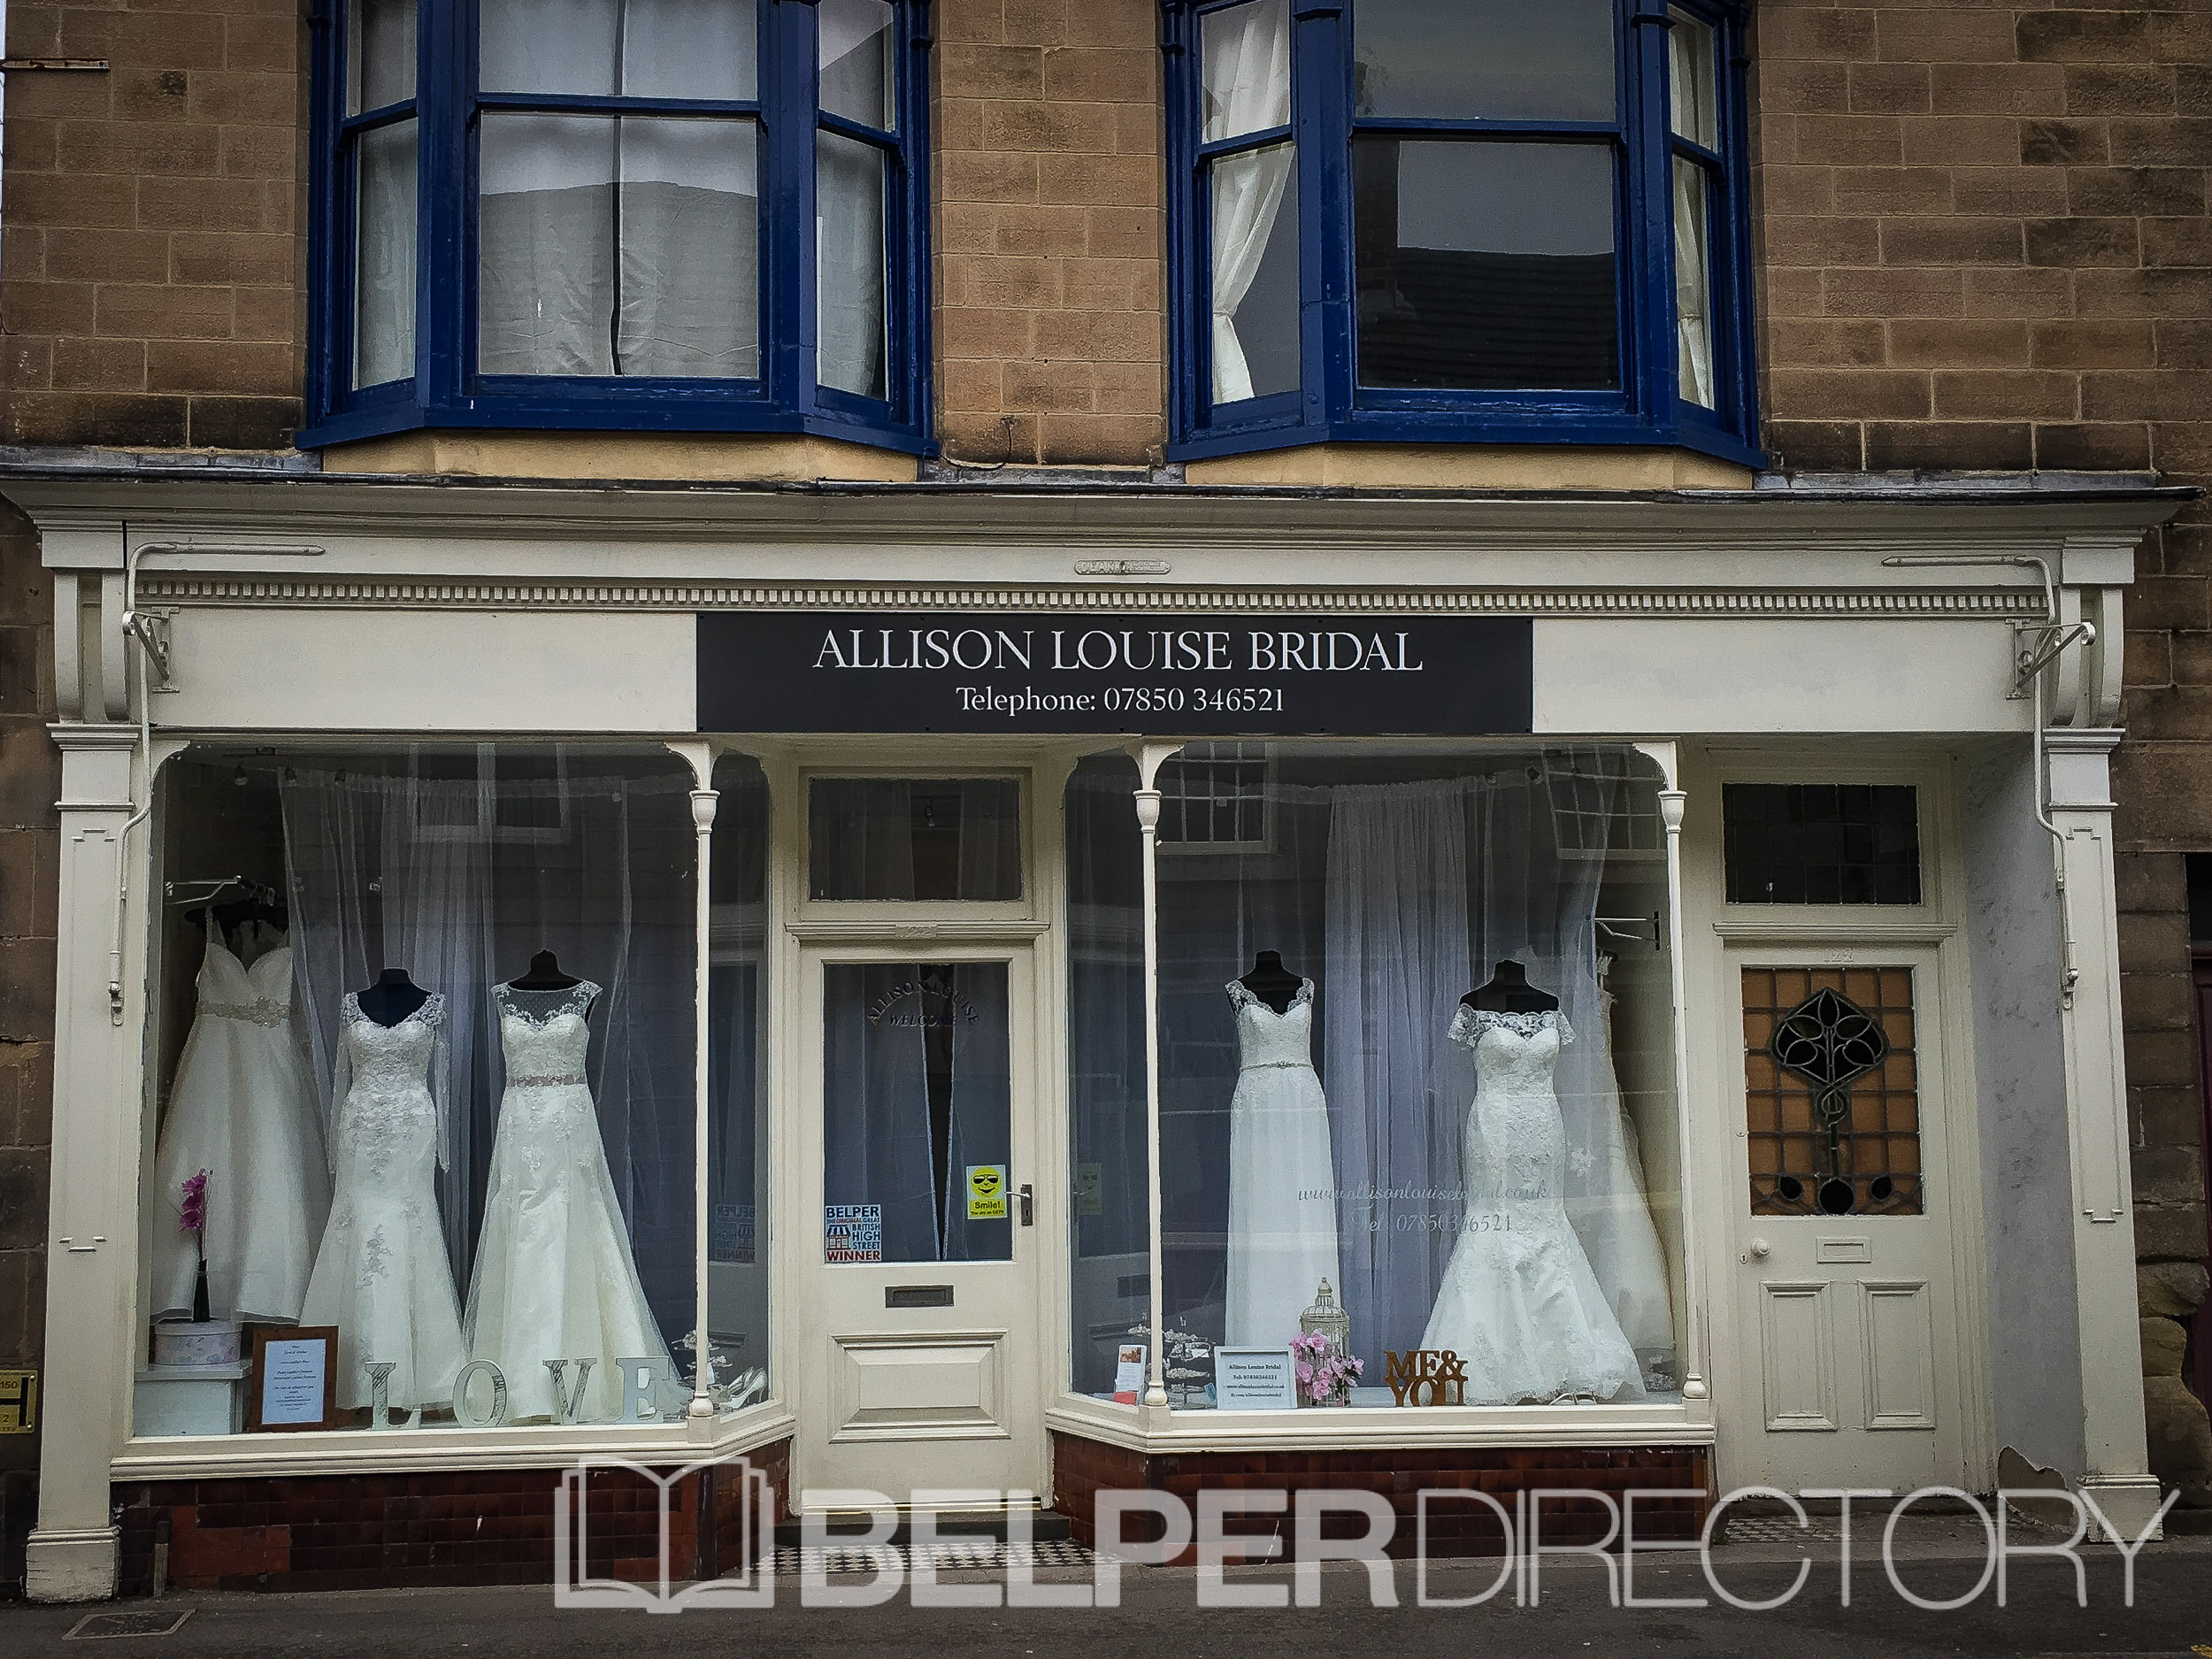 Allison louise bridal shop belper directory belper directory belper directory allison louise bridal shop weddingg junglespirit Images